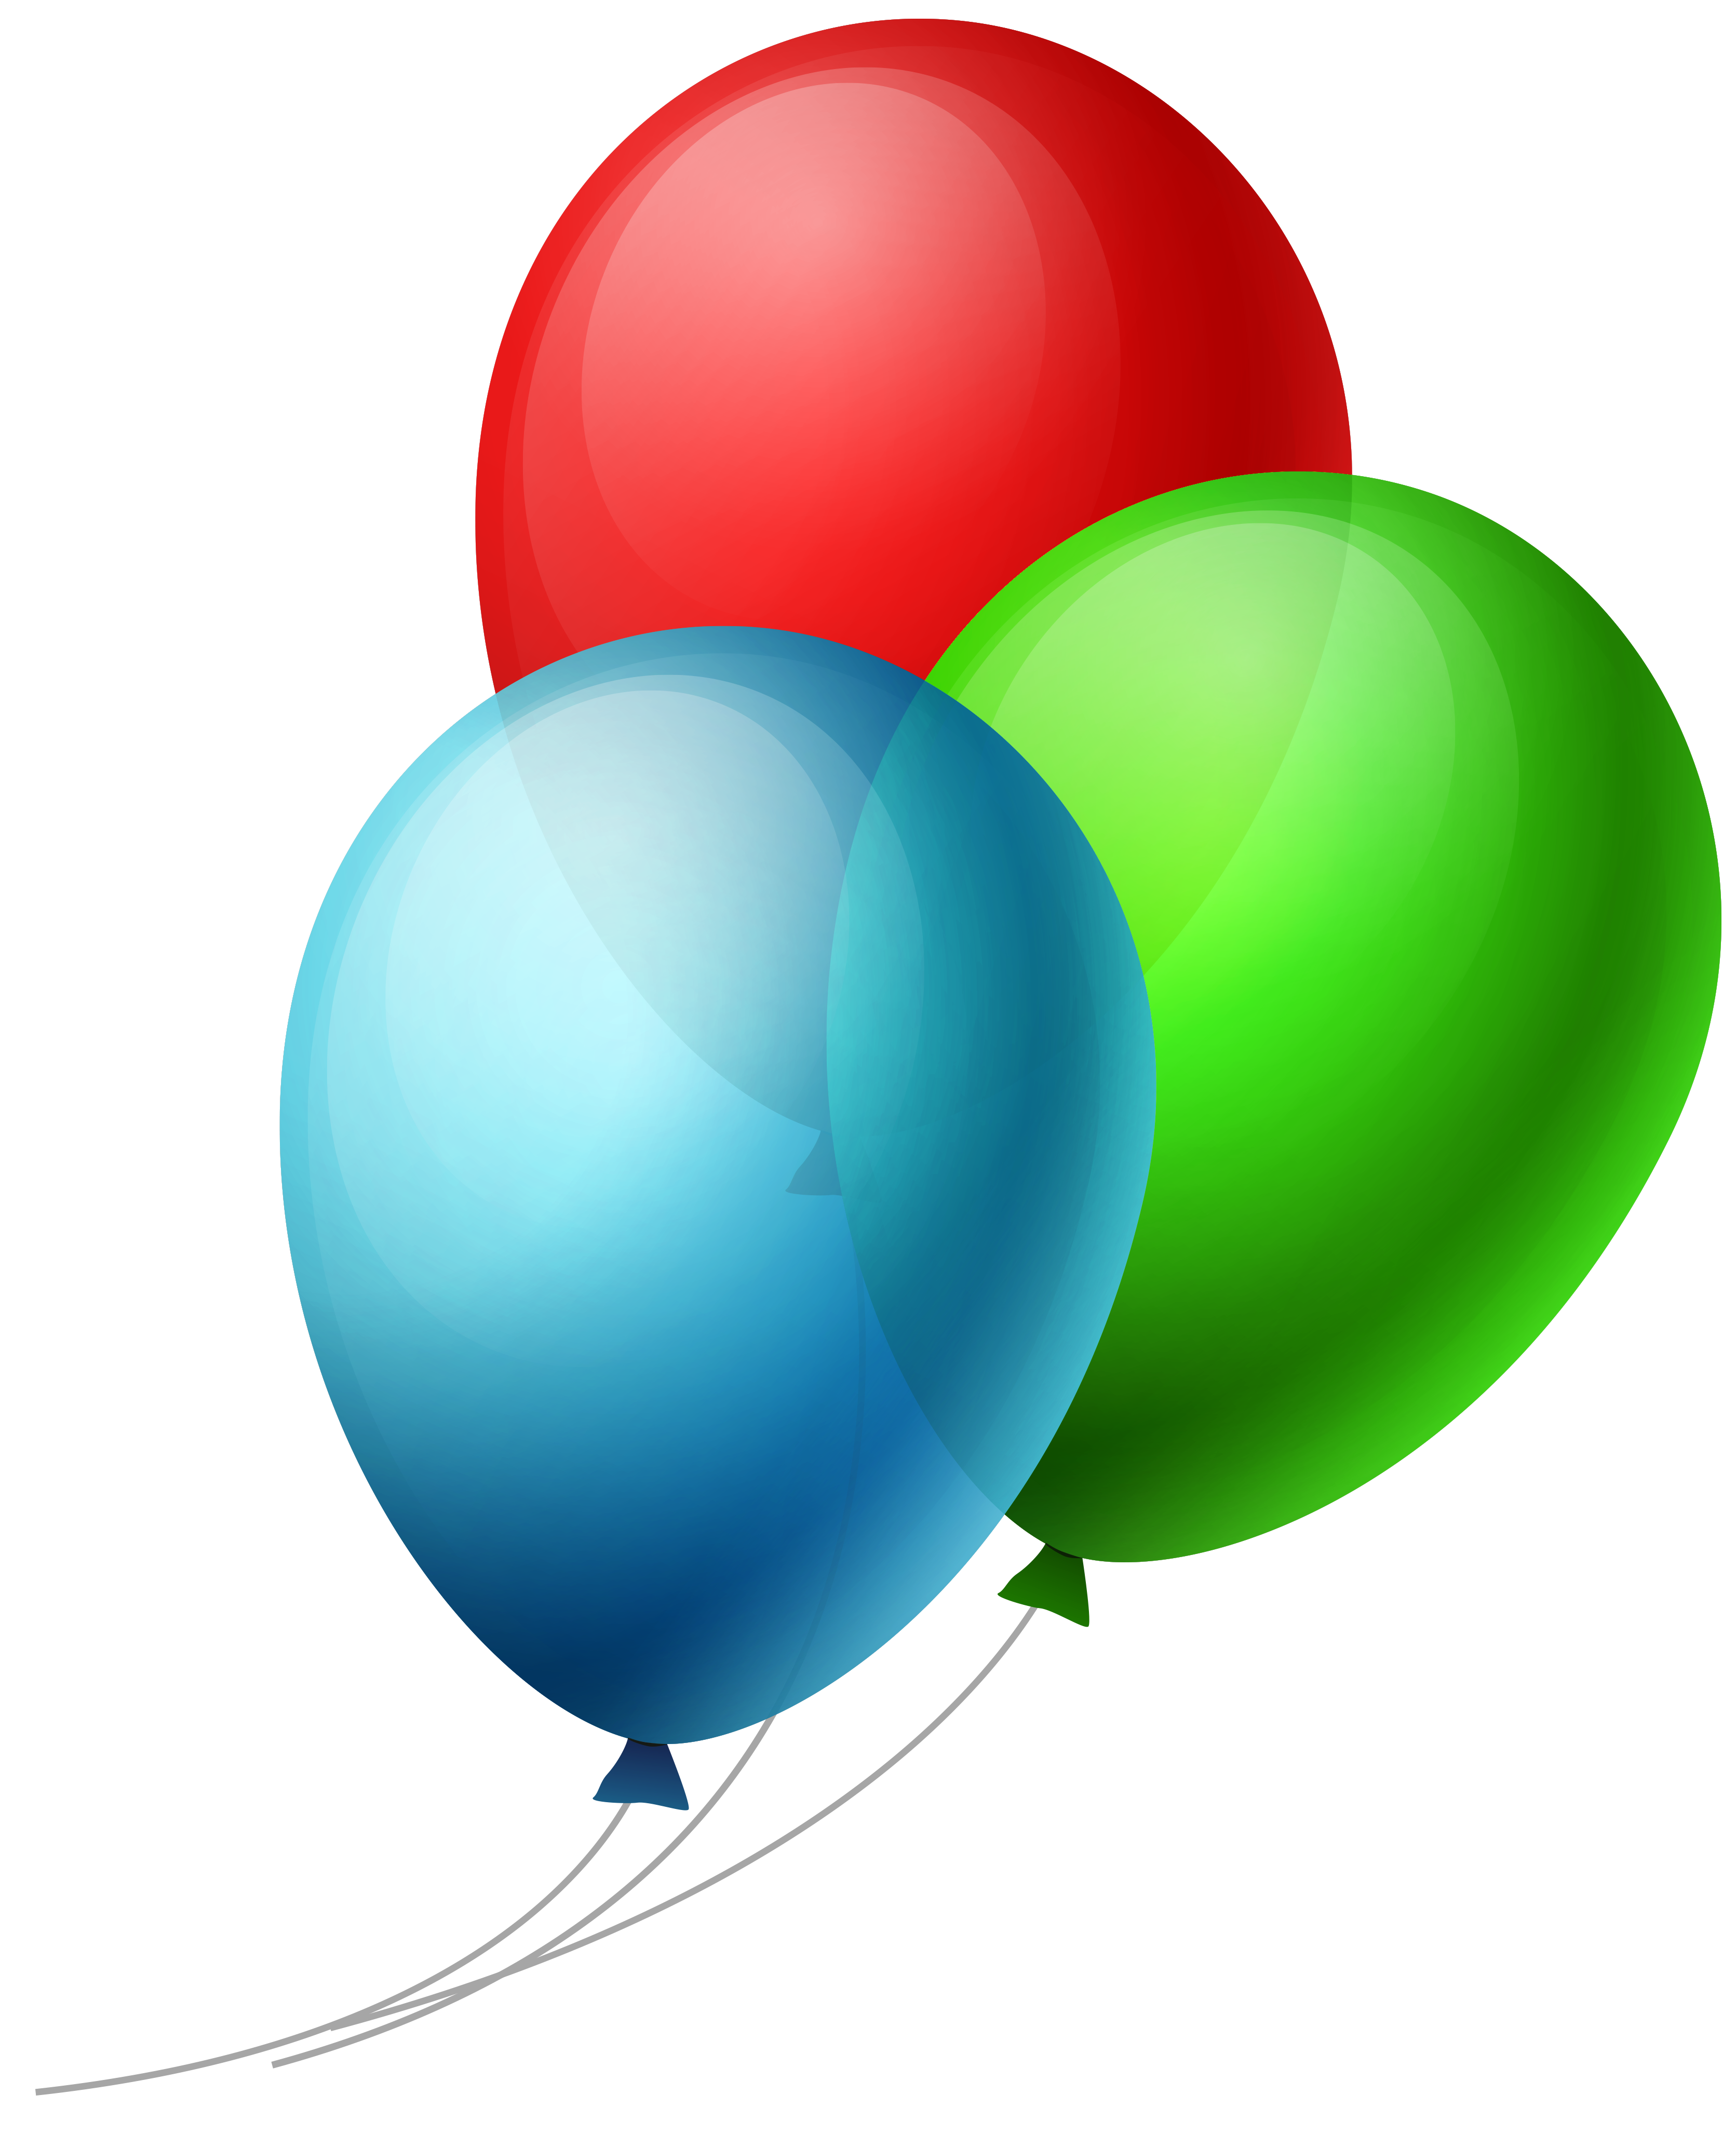 Transparent three balloons png. Clipart balloon chalkboard